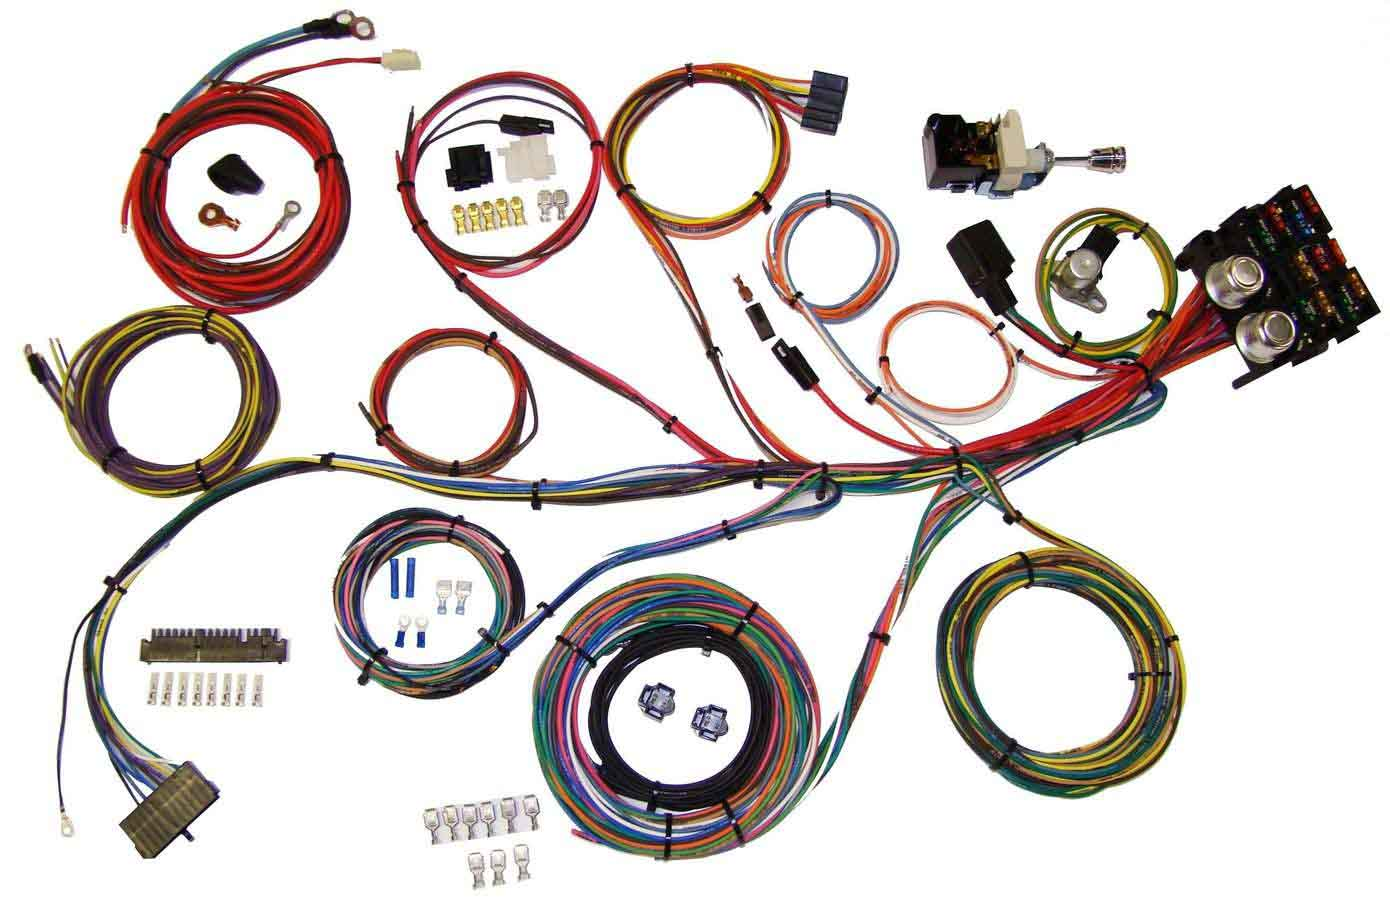 american autowire wiring system 13 power outlets gm column kit p ndetails about american autowire wiring system 13 power outlets gm column kit p n 510004